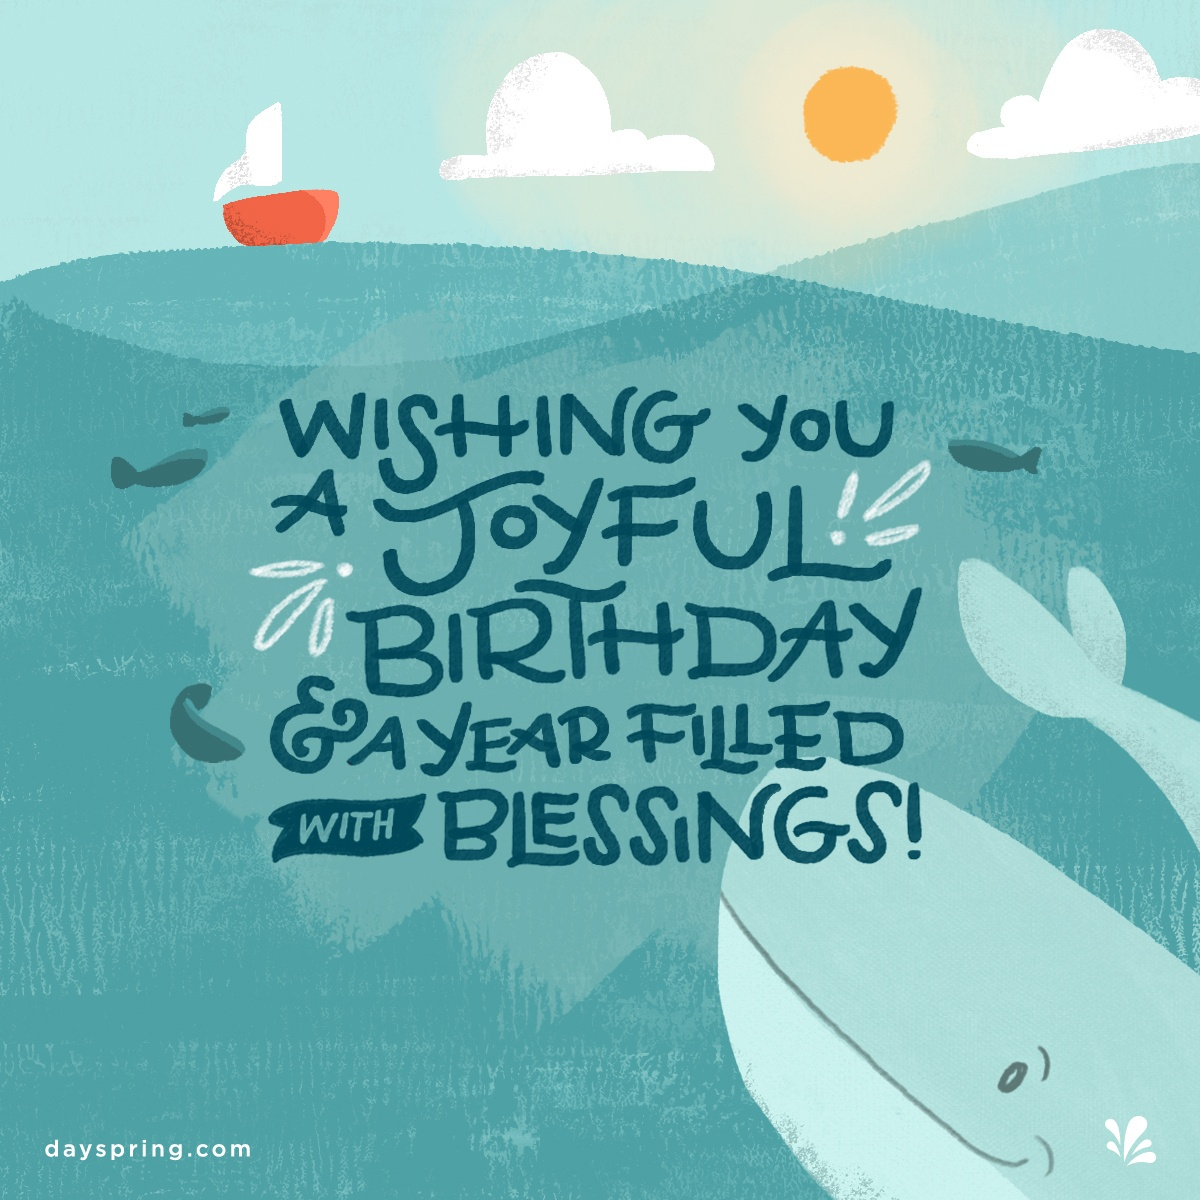 Birthday Ecards | Dayspring - Free Printable Christian Birthday Greeting Cards